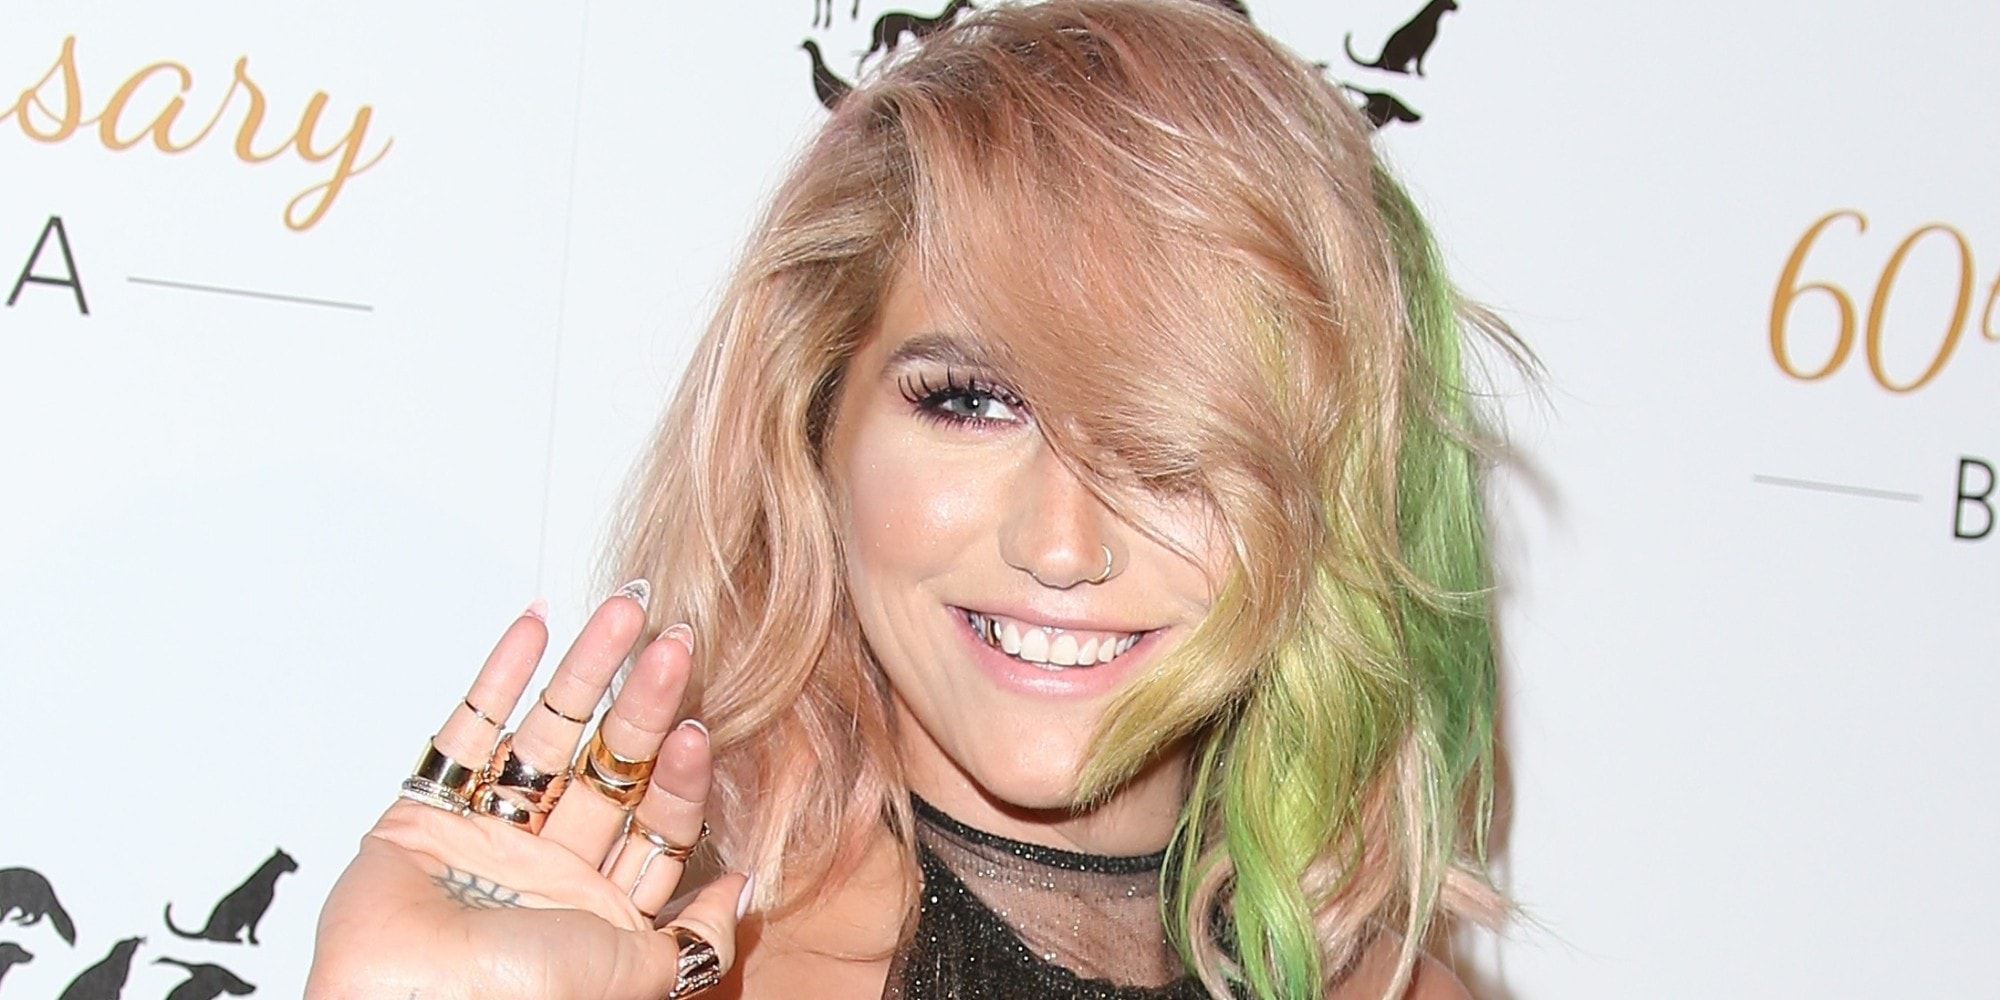 Kesha Wallpapers hd